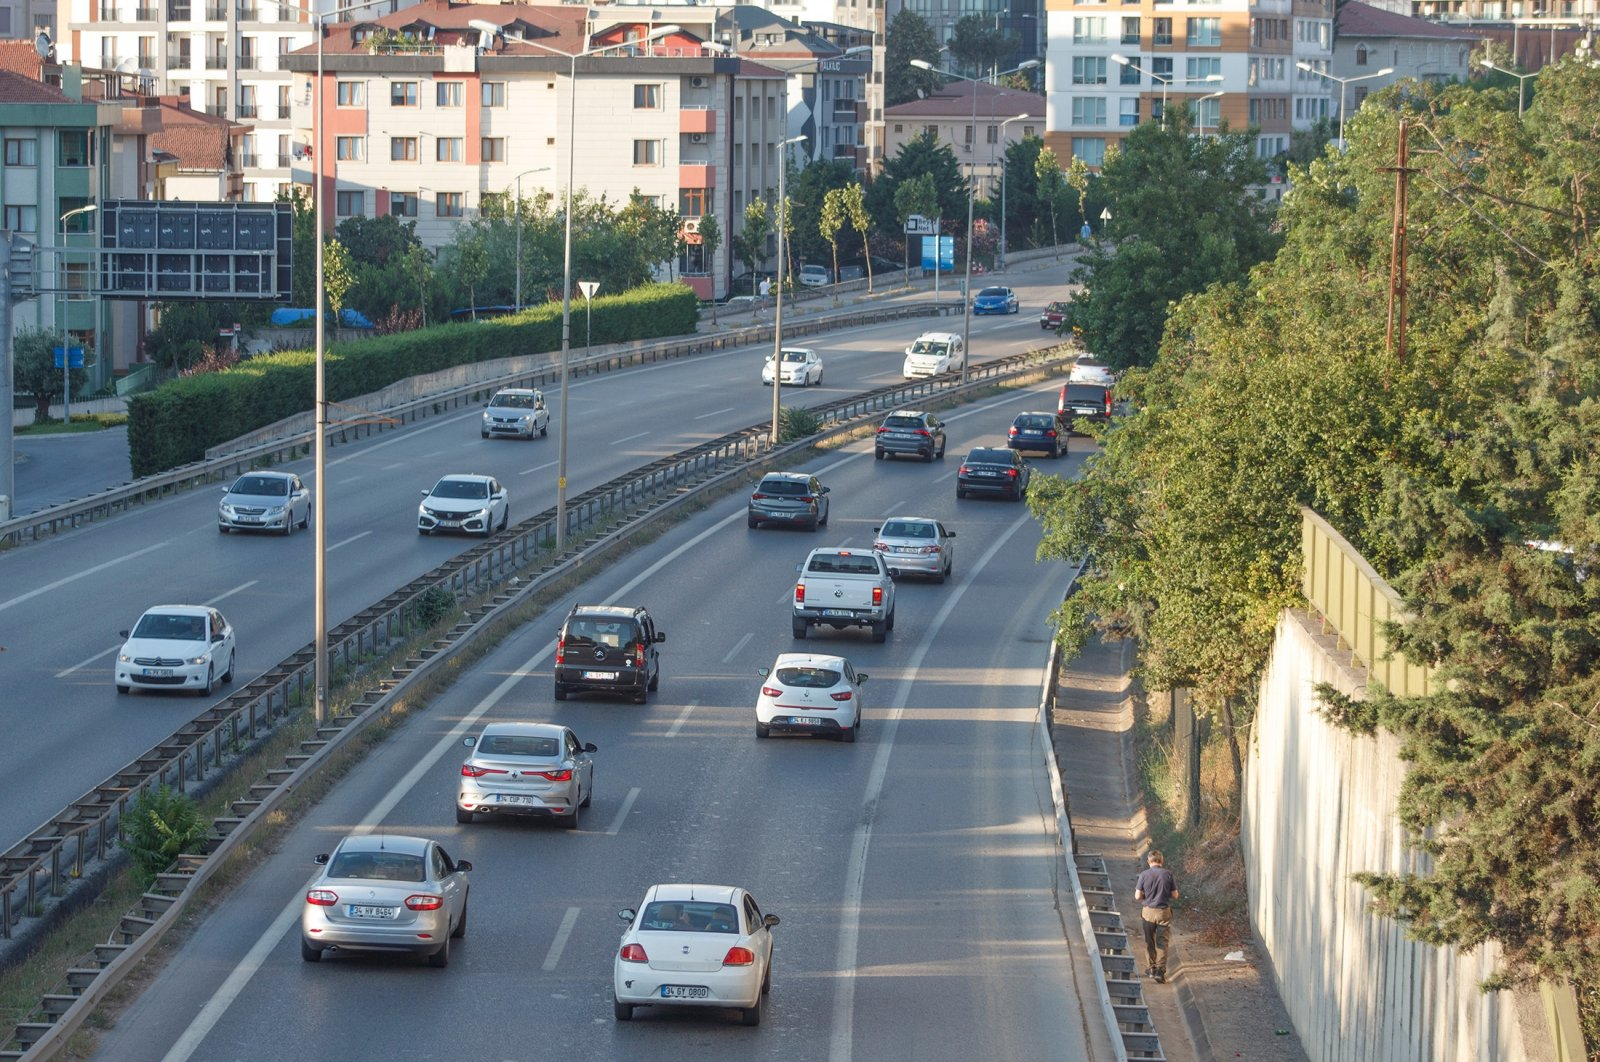 Vehicles seen on a highway in Istanbul, Turkey, July 20, 2021. (Shutterstock Photo)